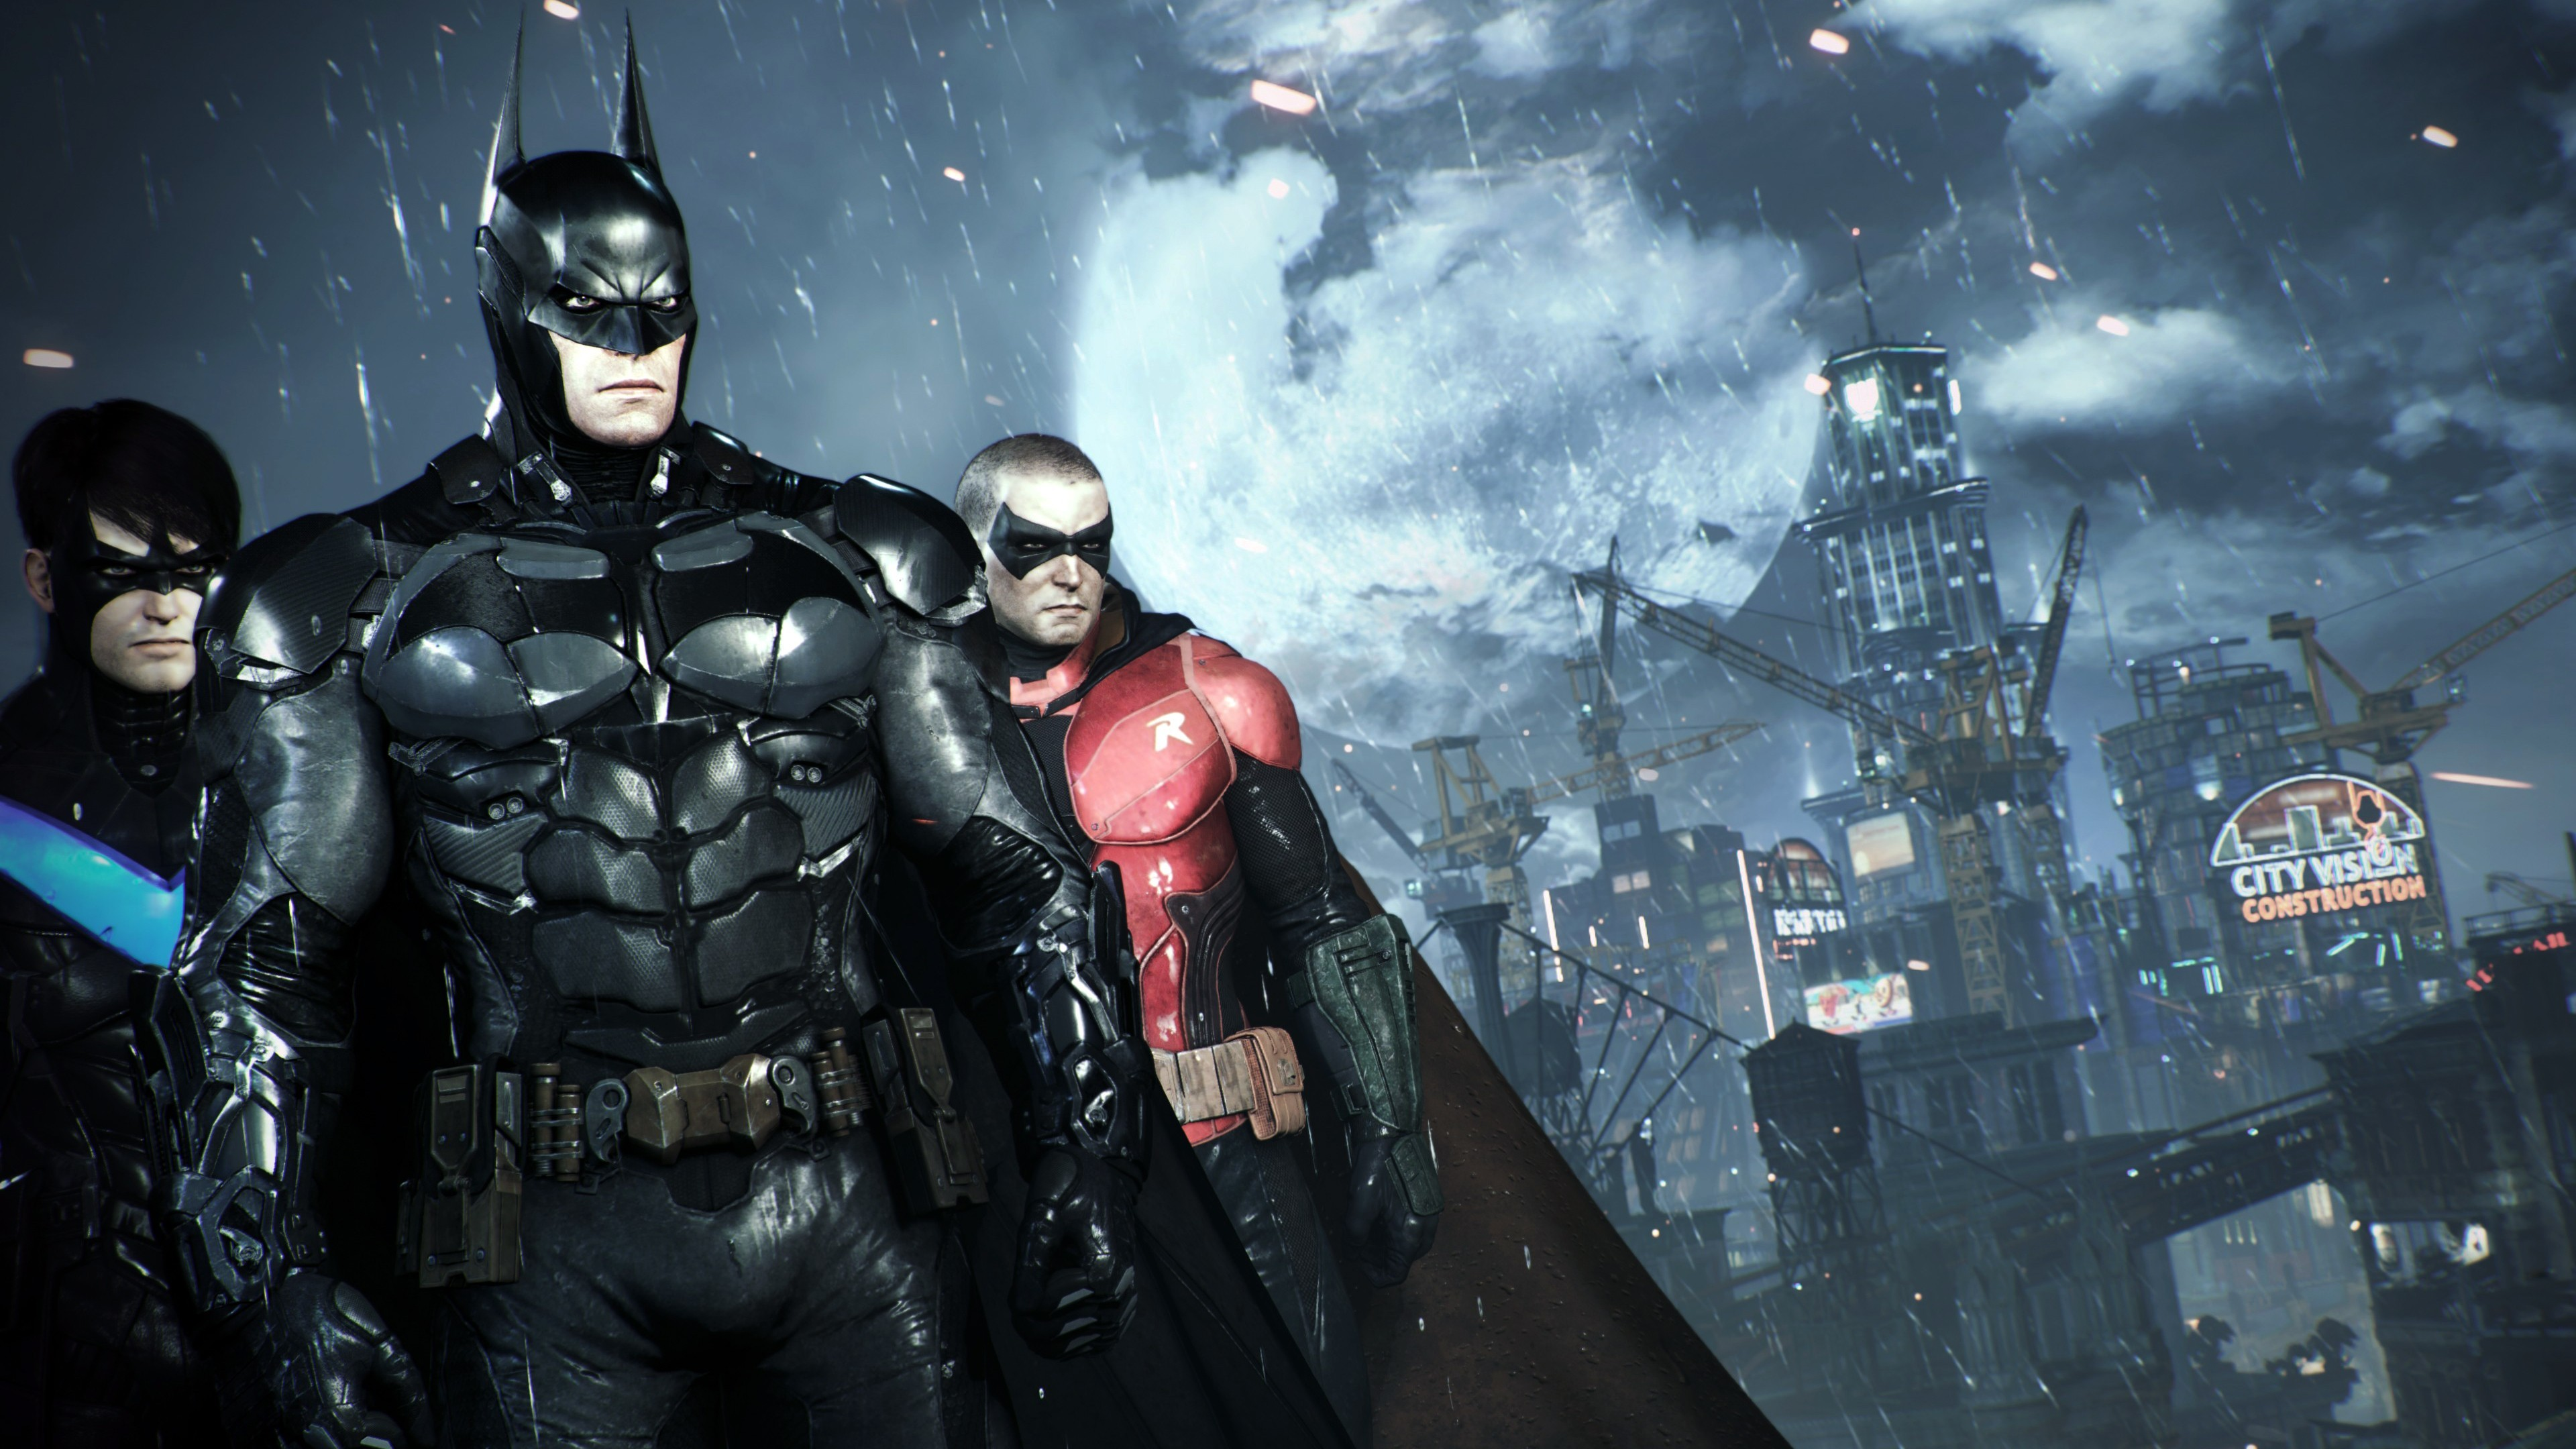 Batman And Robin Wallpaper Hd 75 Images